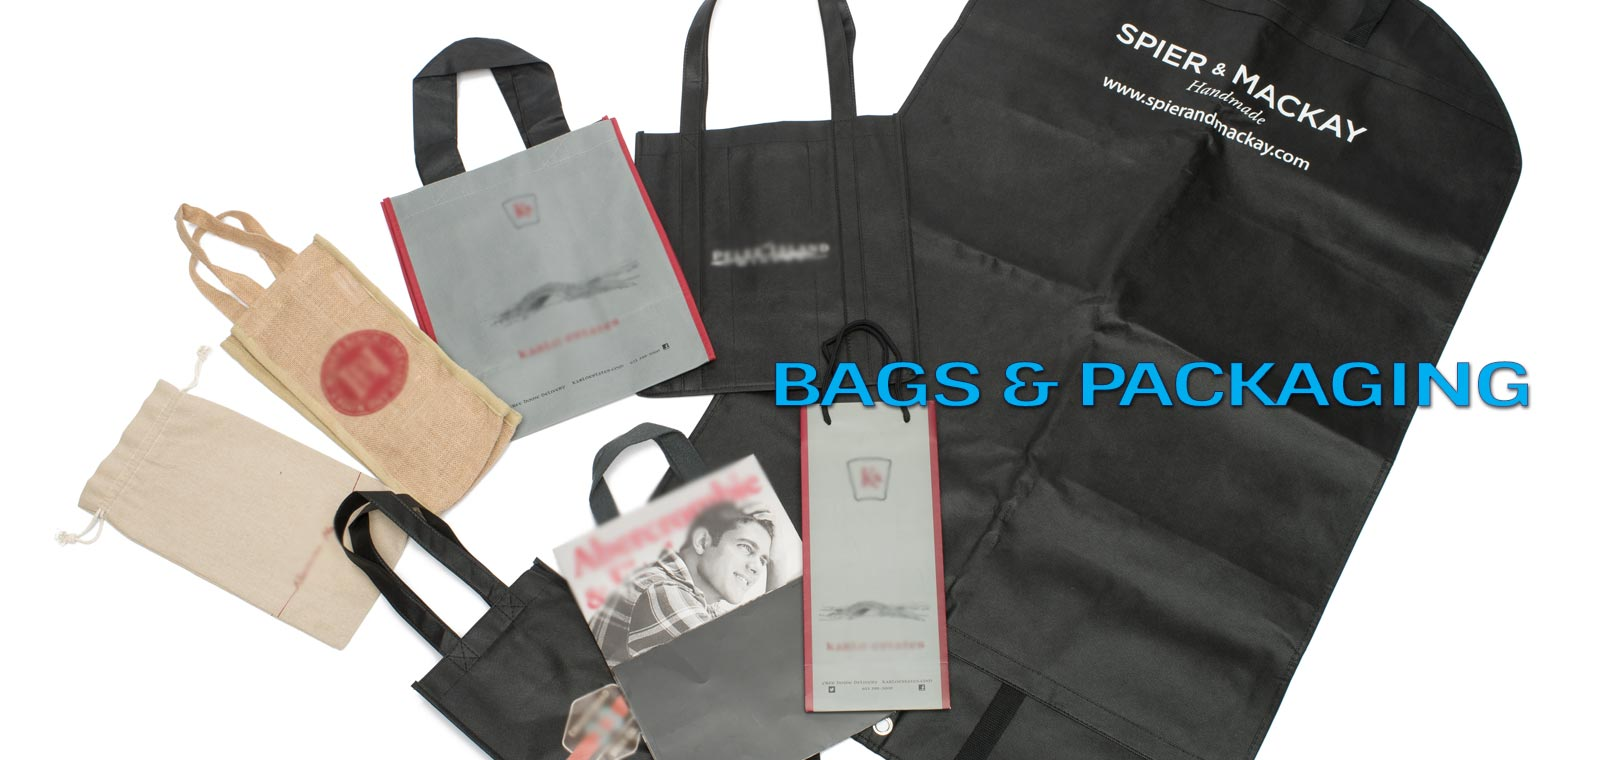 DK - BAGS AND PACKAGING